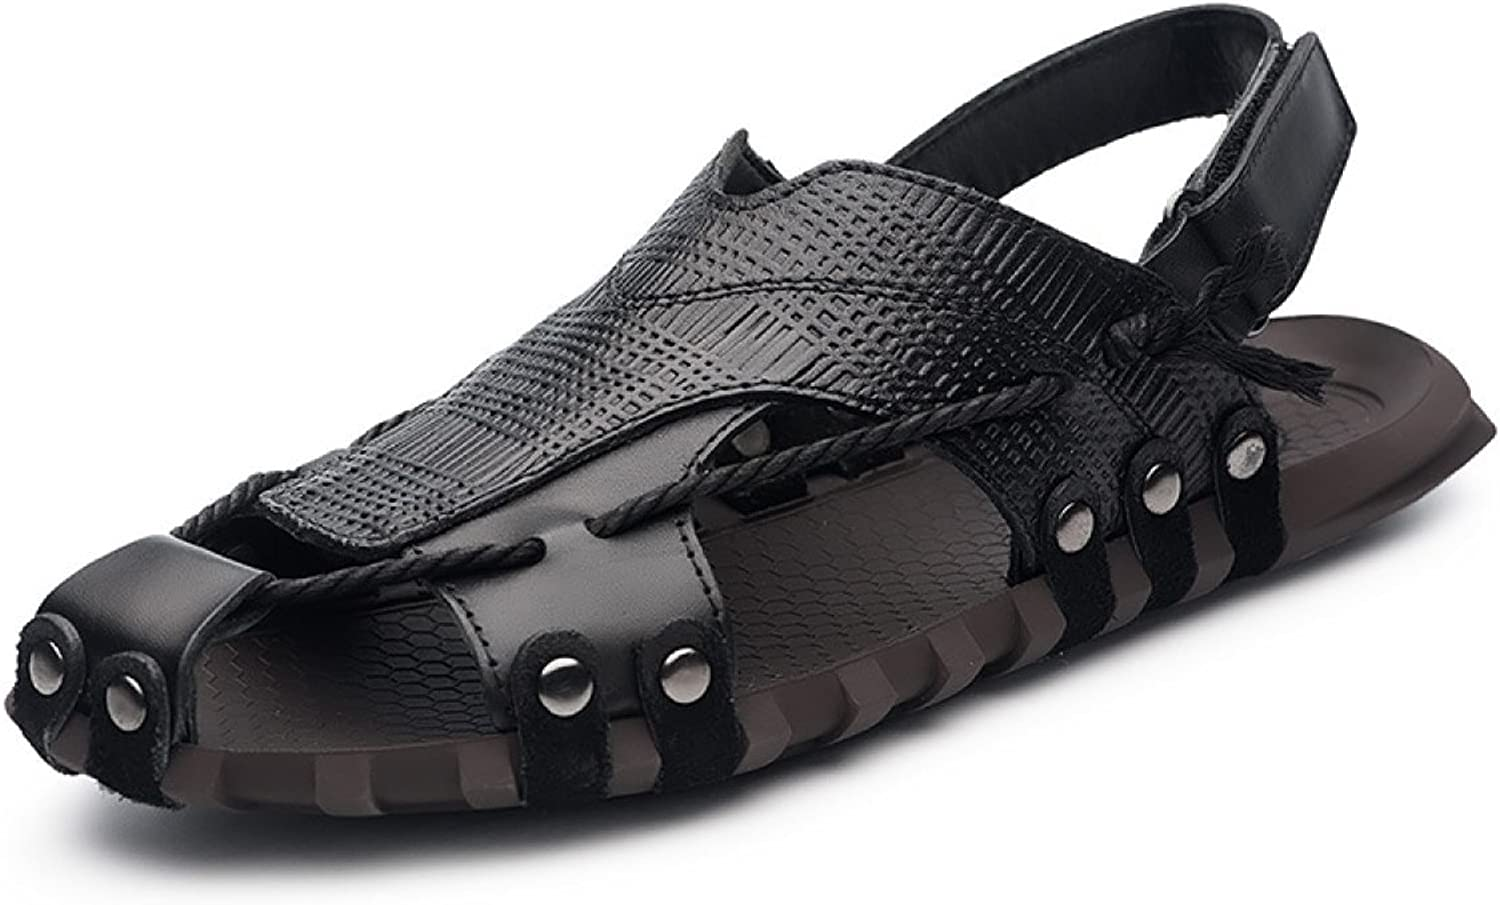 LXXAMens Summer Beach Male Slipper Real Leather Open-Toe Sandals Trekking shoes Two Uses